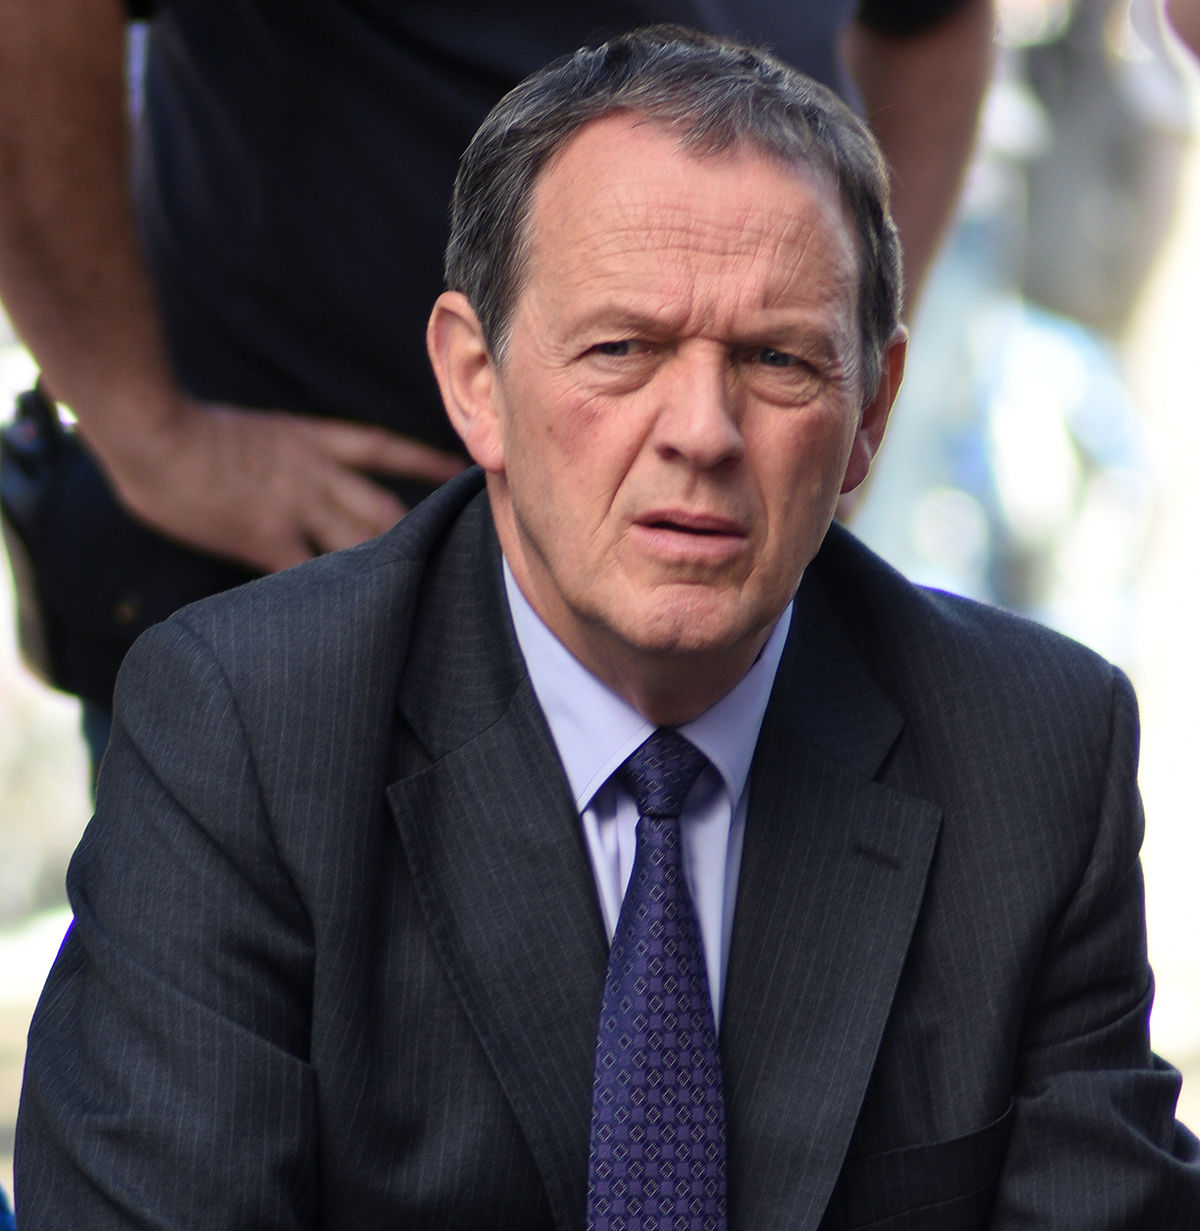 Inspector Lewis Wikipedia